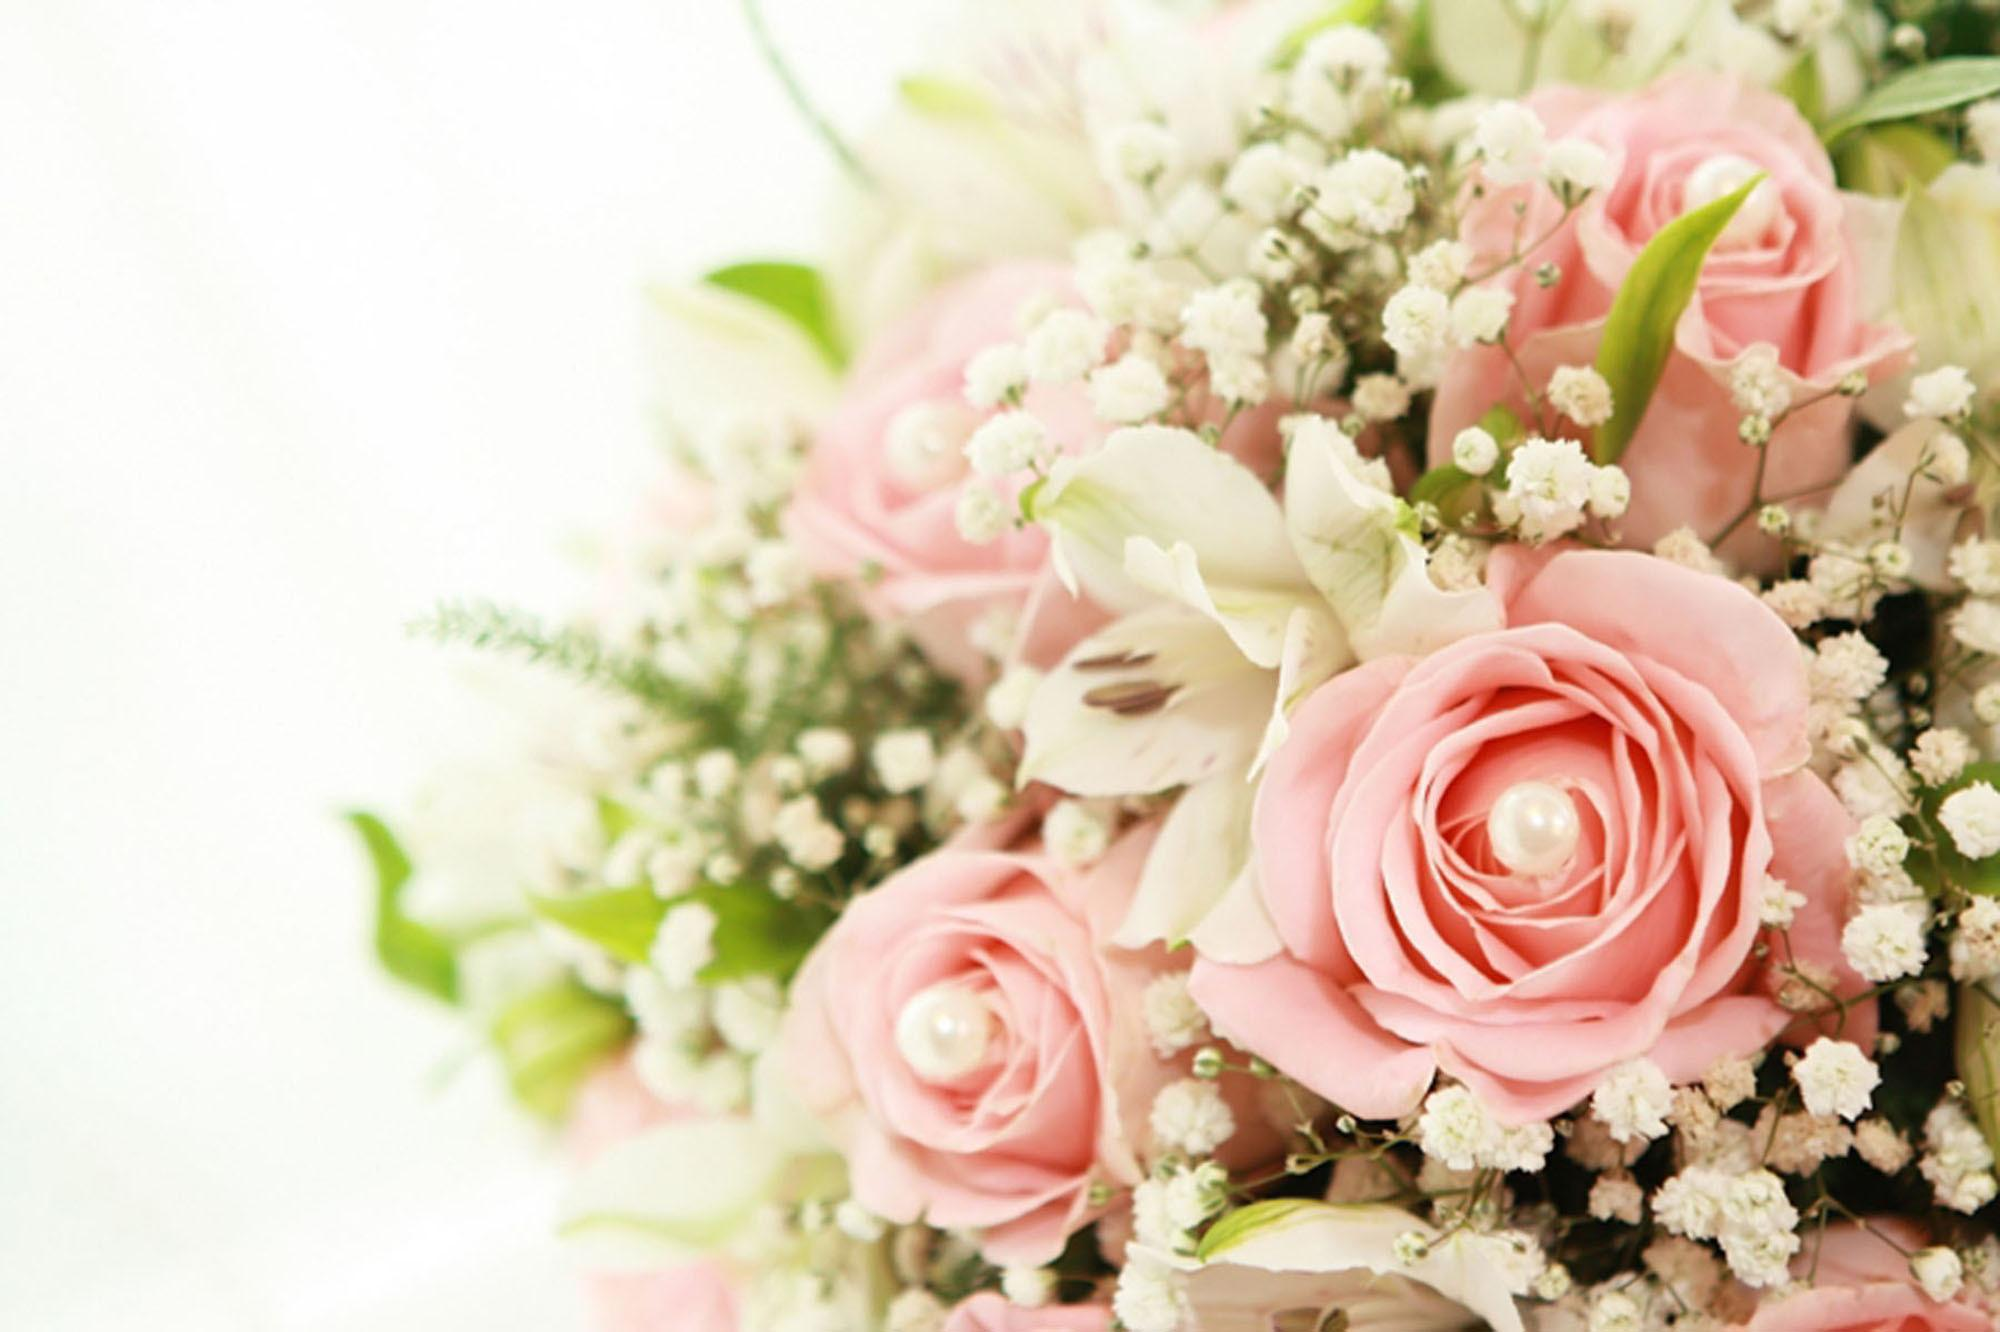 Roses And Baby S Breath Hd Wallpaper Background Image 2000x1332 Id 745775 Wallpaper Abyss